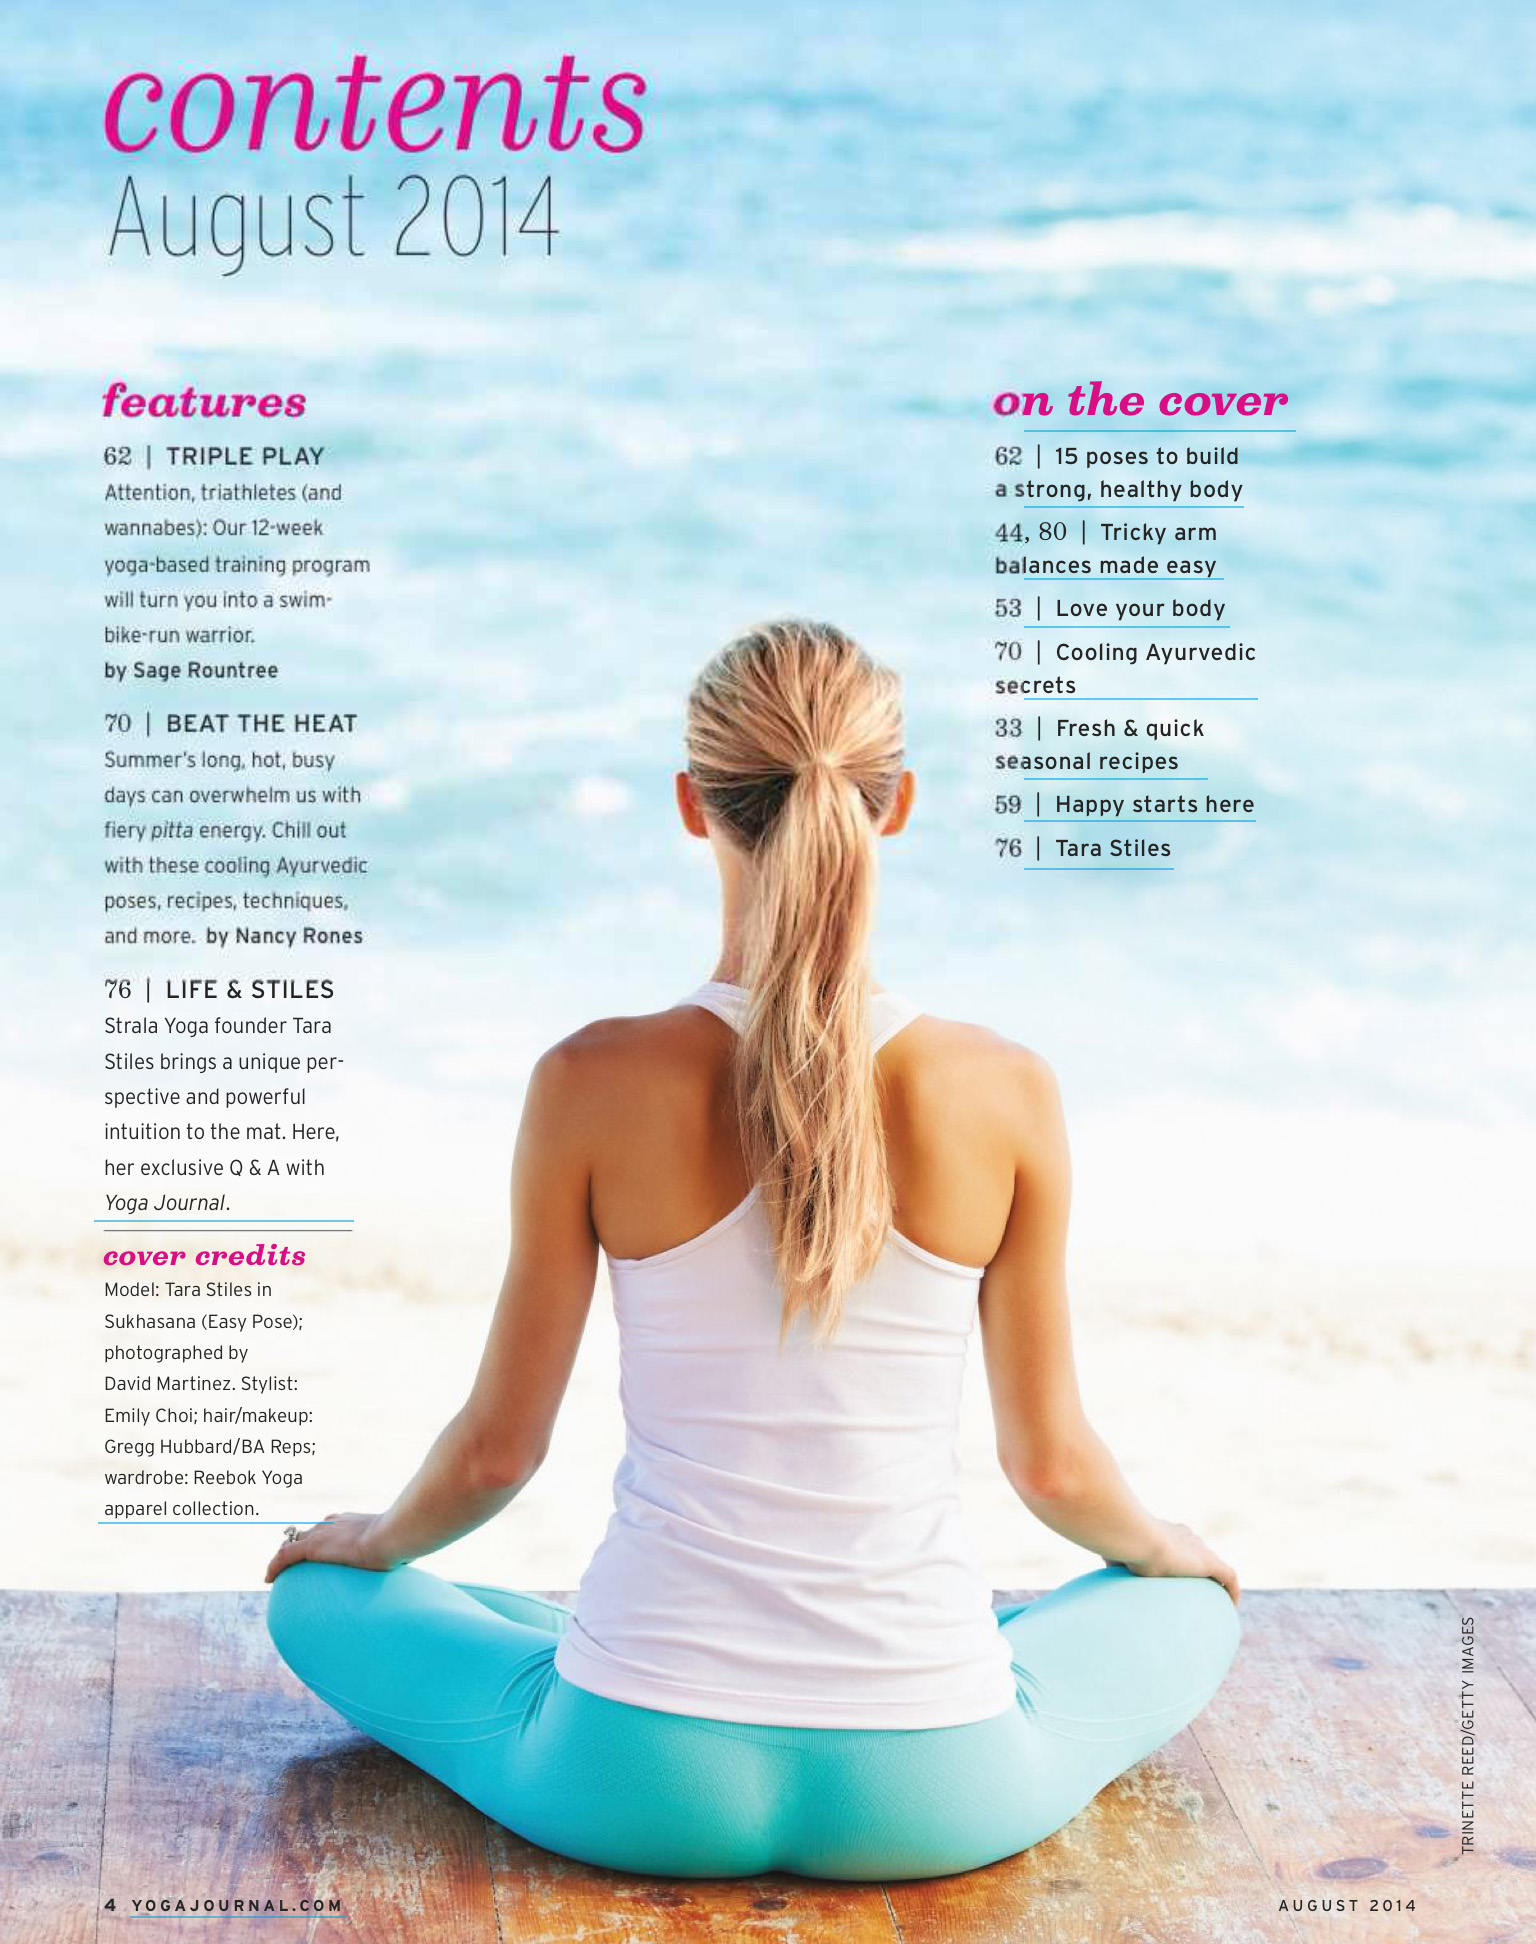 yoga journal contents page